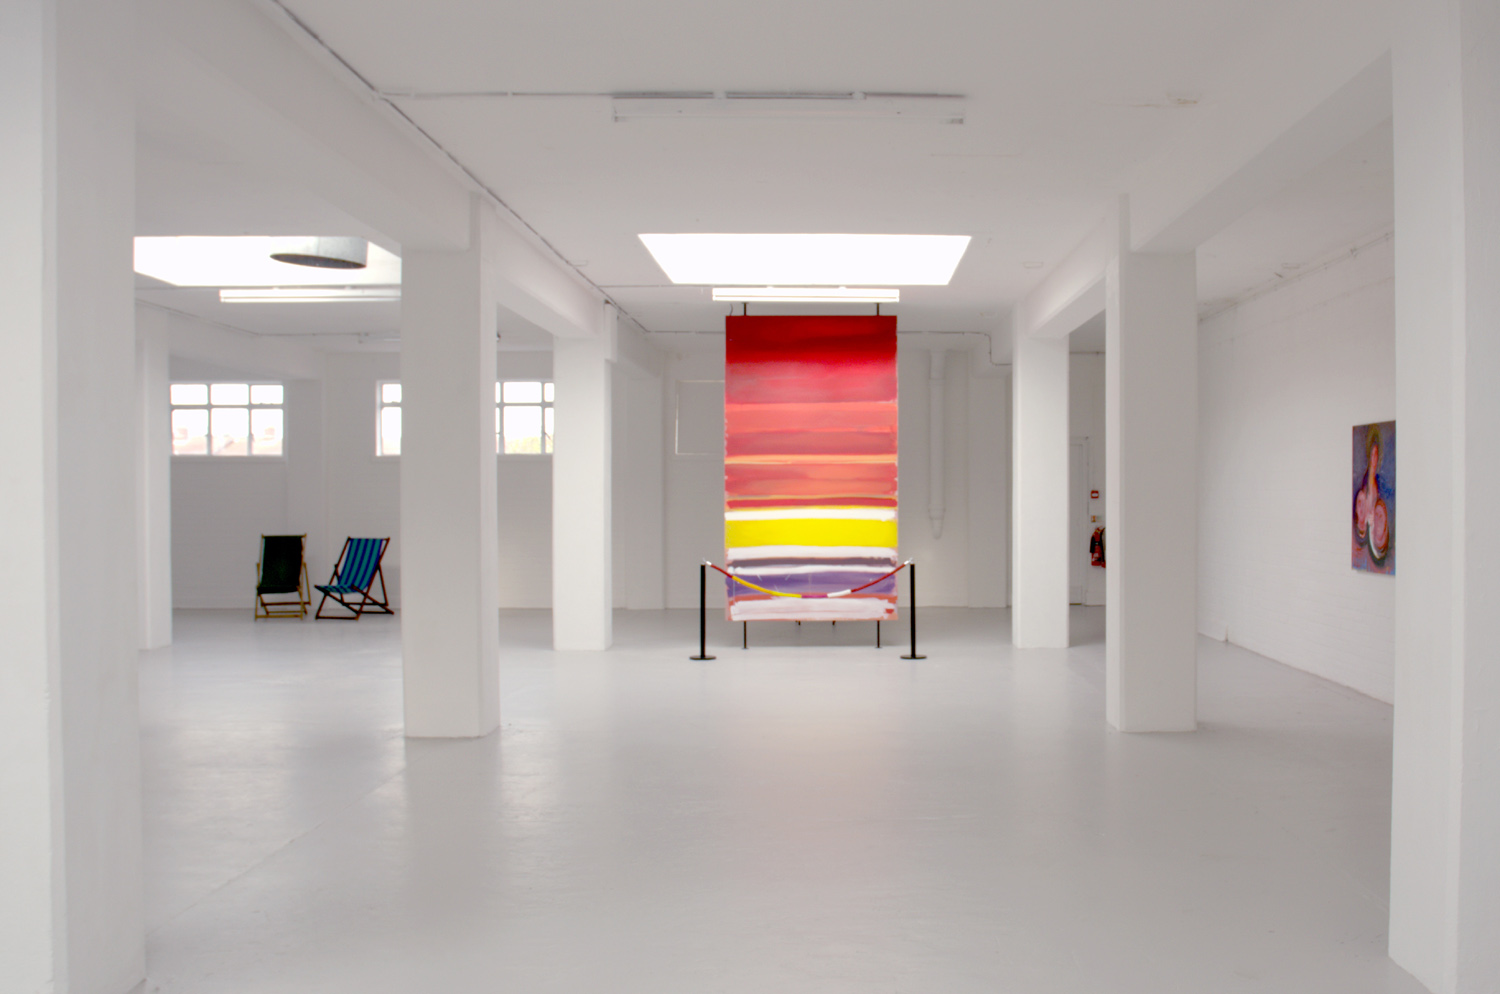 Installation view,[background] Simon Fujiwara, The Mirror Stage ,2009 - ongoing,mixed media,dimensions variable, video,27:41 minutes